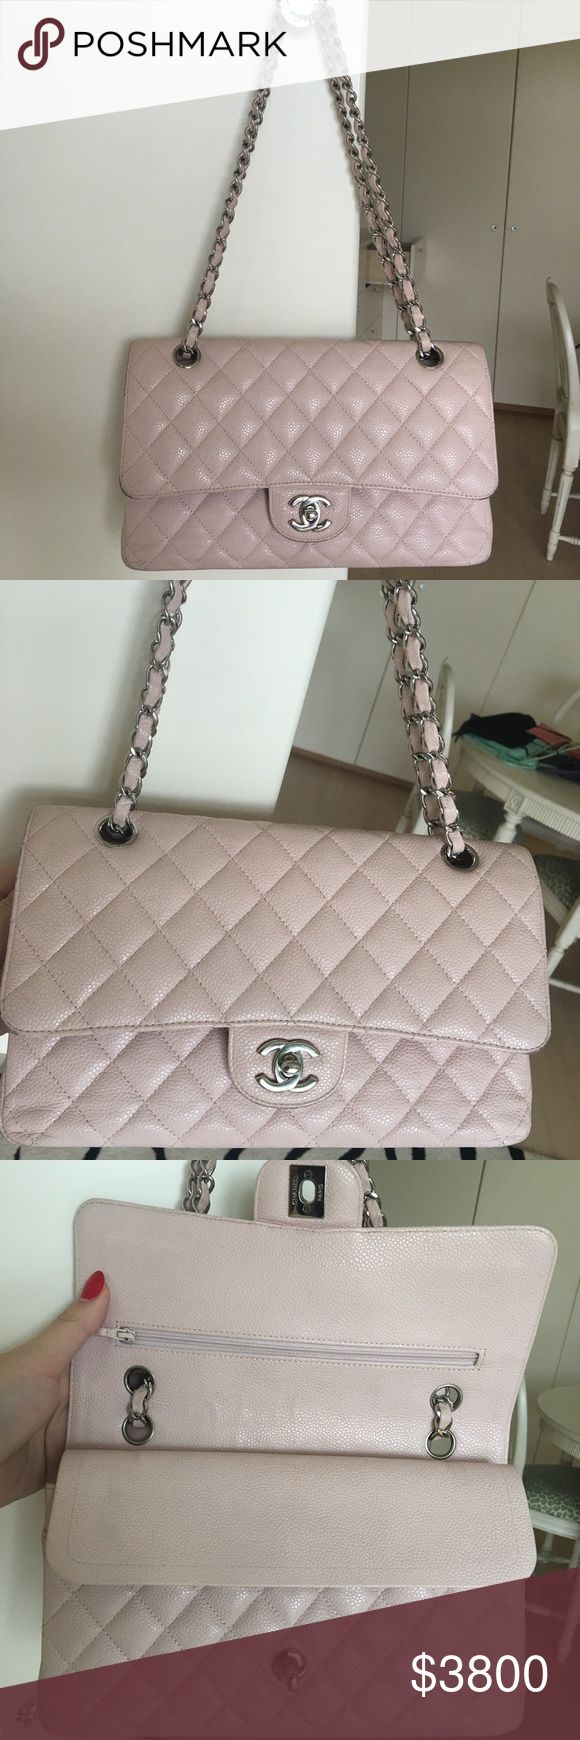 "Chanel Maxi Classic Caviar double flap bag. USED This limited edition Chanel Maxi Classic double flap bag of light pink quilted caviar leather features a front flap with signature CC turnlock closure, half moon back pocket and an adjustable interwoven silver tone chain link and pink leather shoulder strap.The interior is lined in light pink leather with ""zipper compartment under first flap.The bag is a 19-series & comes with Chanel box, Chanel dustbag, retail upc. DISCLOSURES- This is a Pre…"